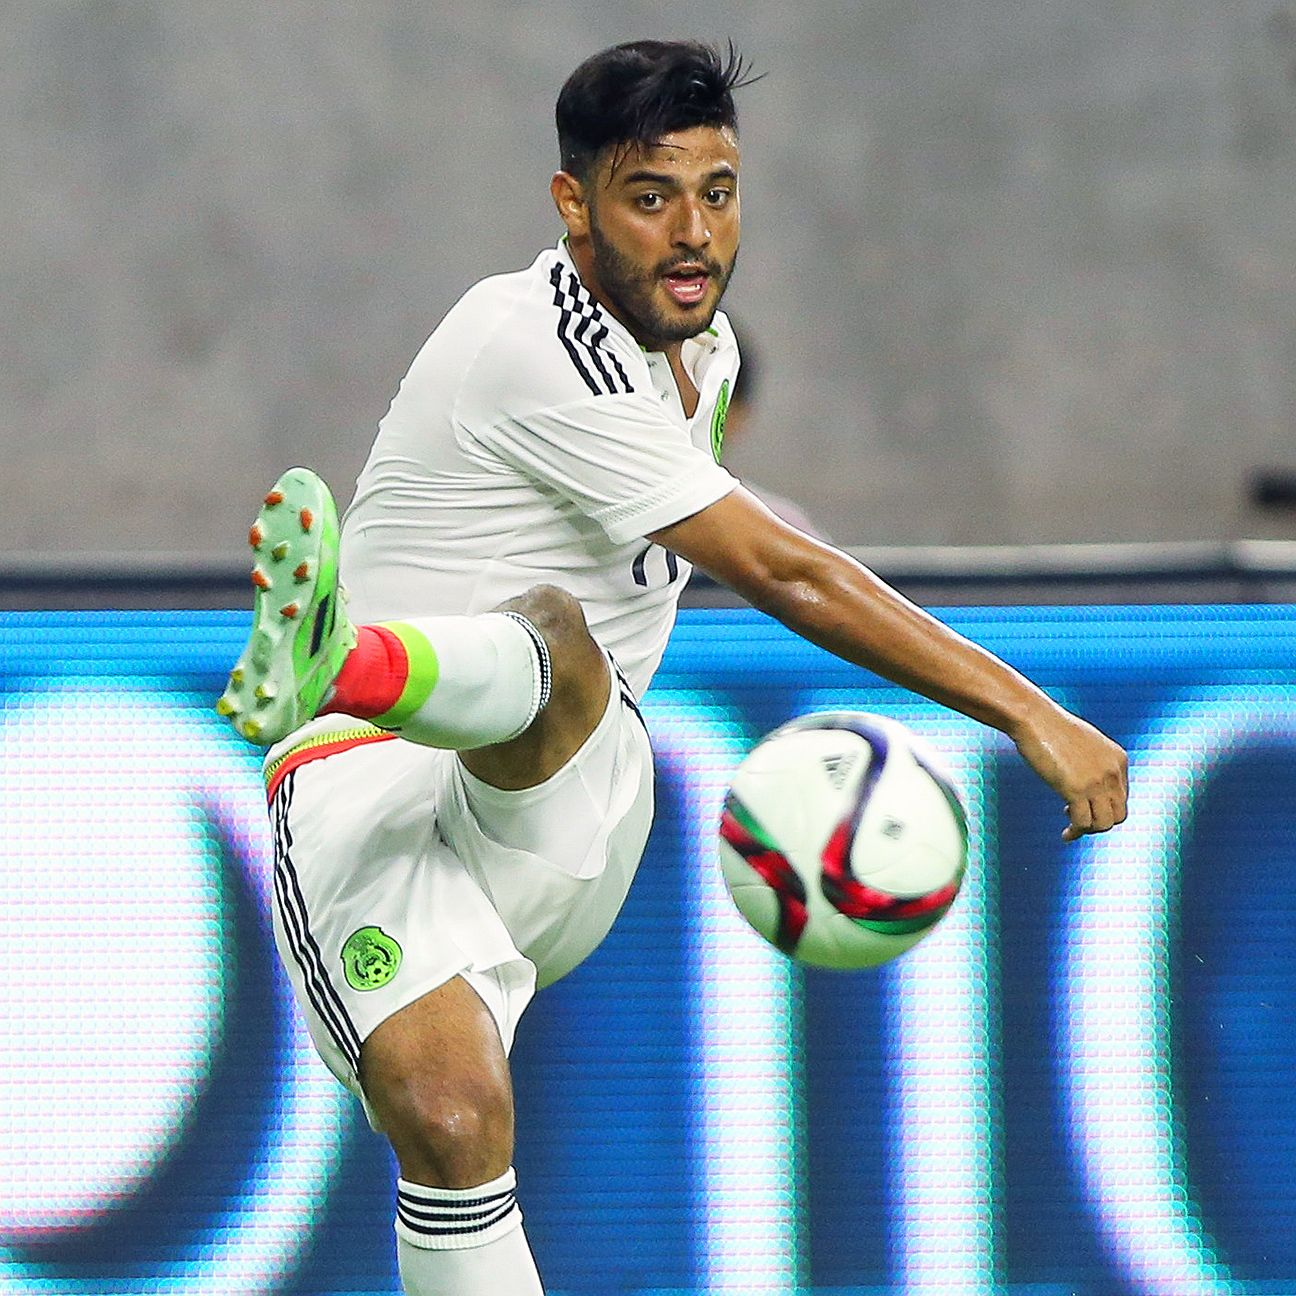 Mexico striker Carlos Vela lacked sharpness and struggled with fitness during the Gold Cup.